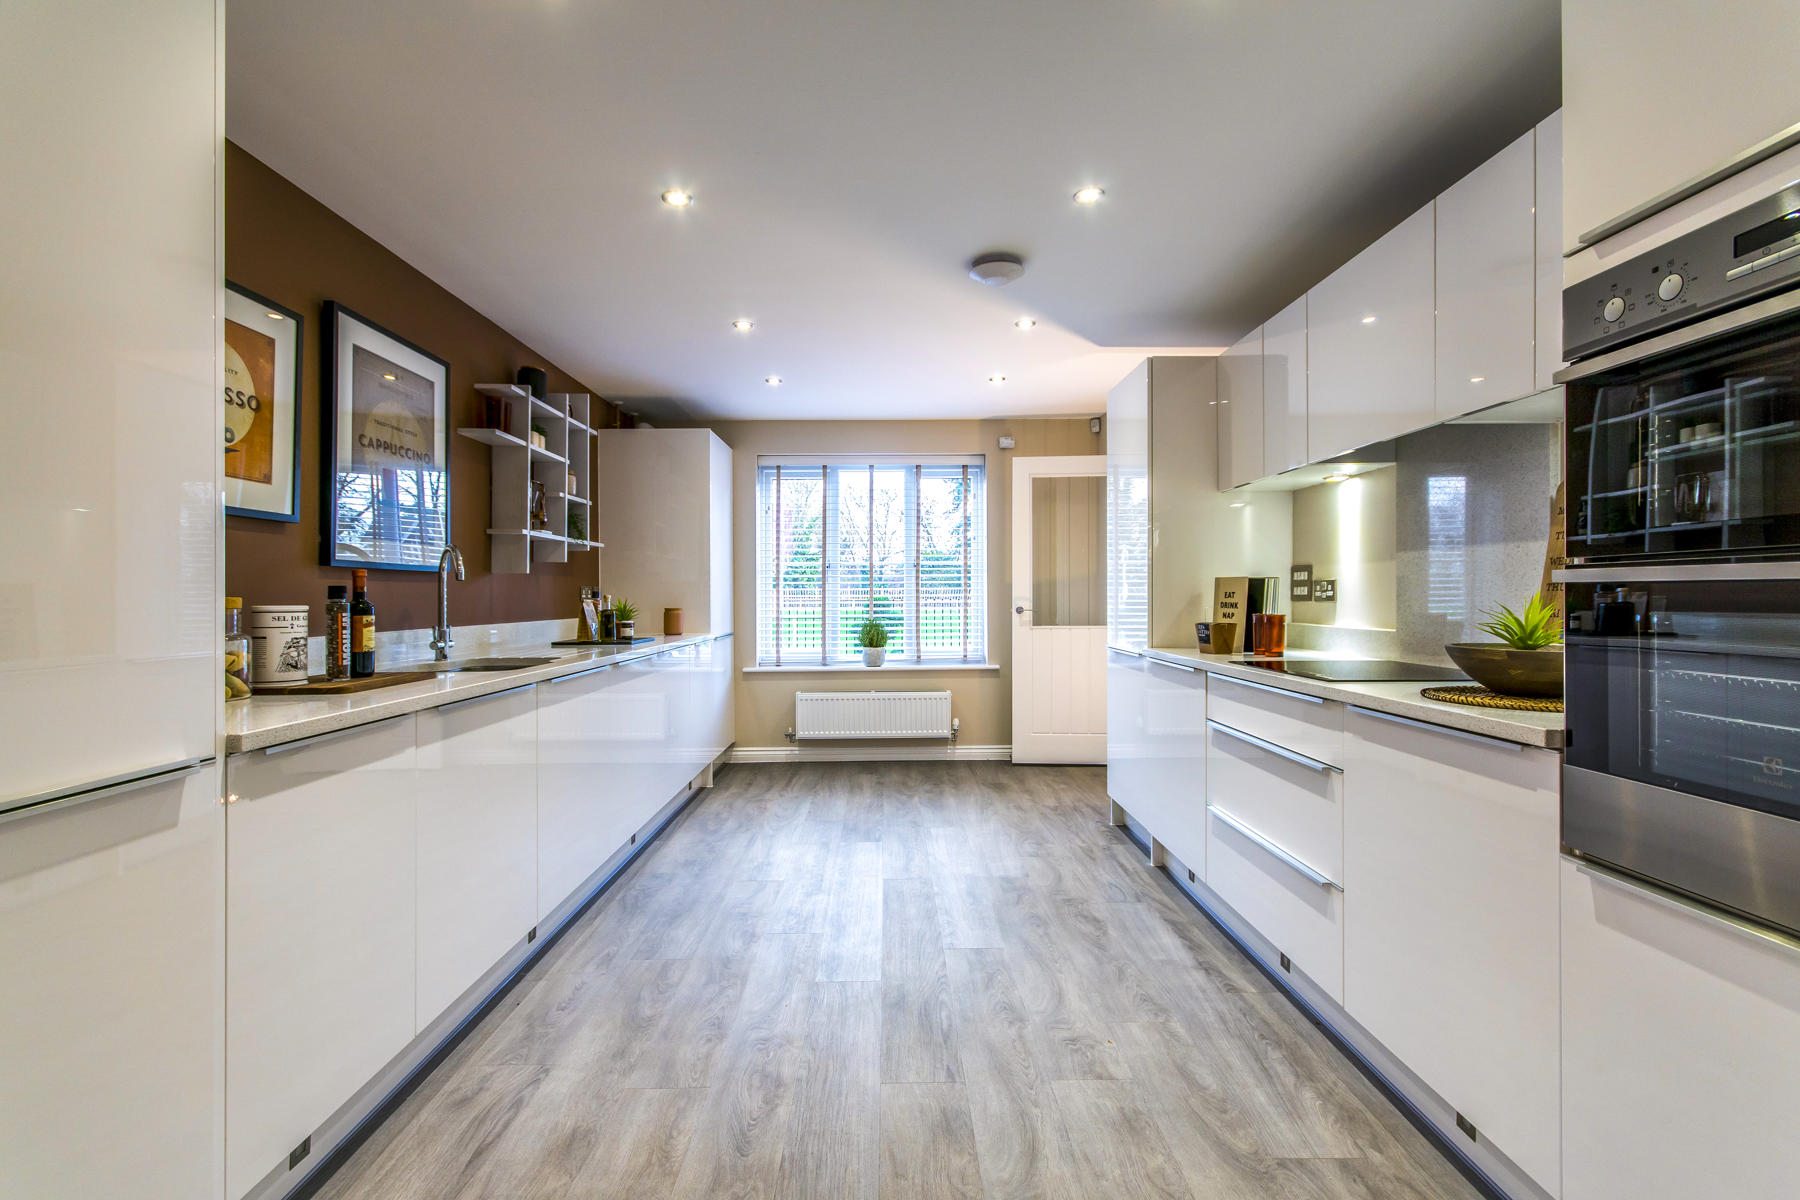 Thornford kitchen 2  - Edwalton Chase